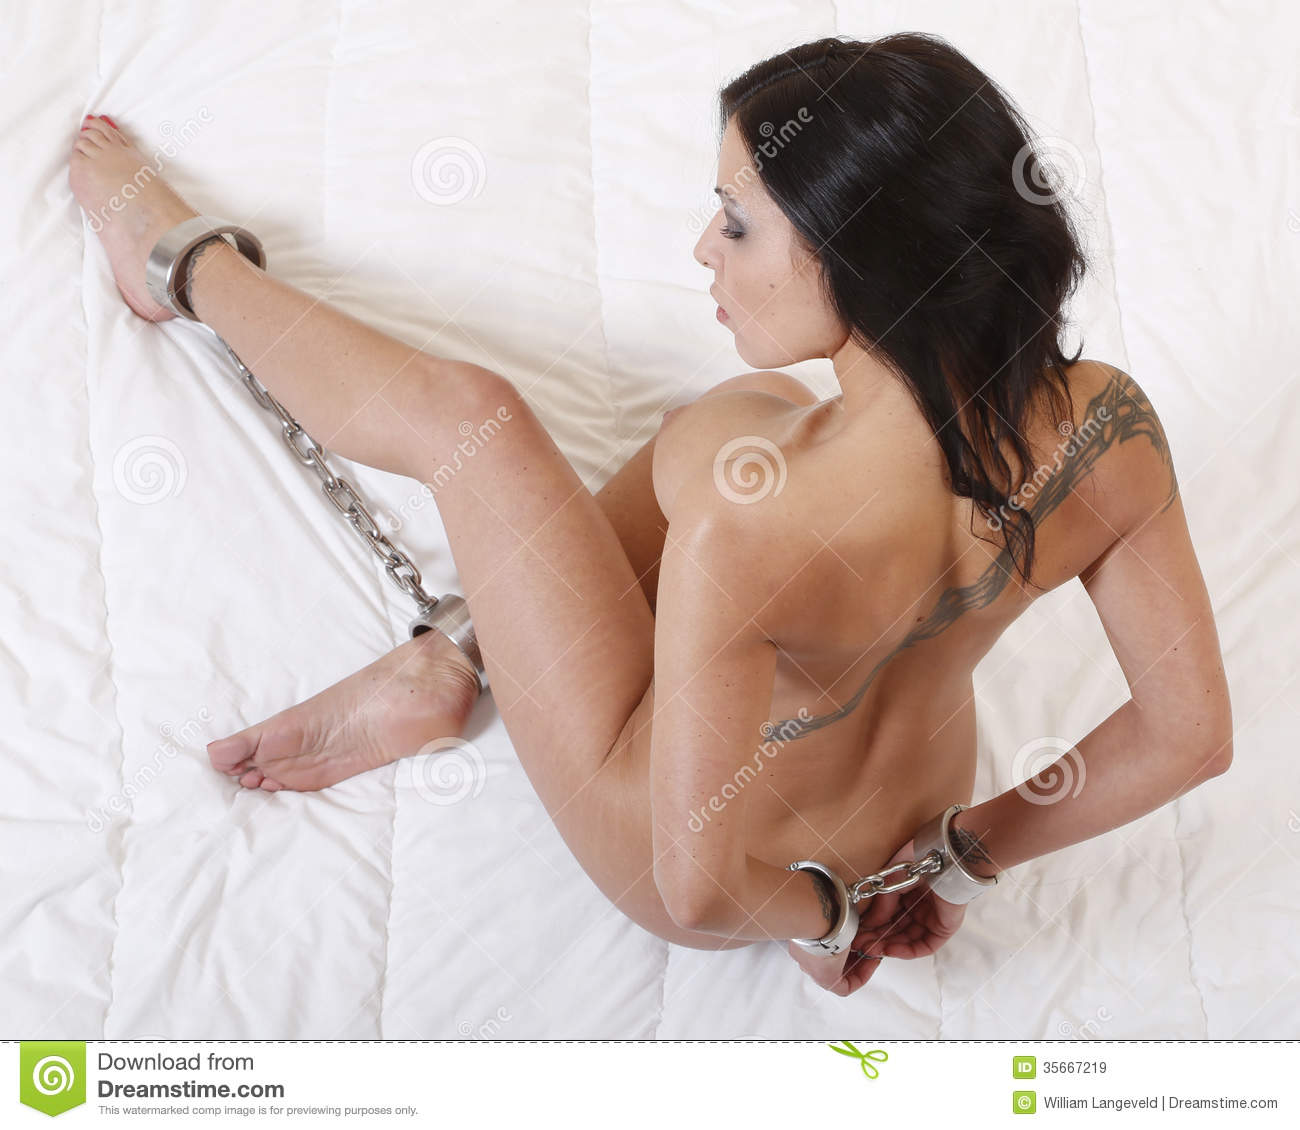 Beautiful Nude Or Naked Woman Handcuffed Stock Image -5425